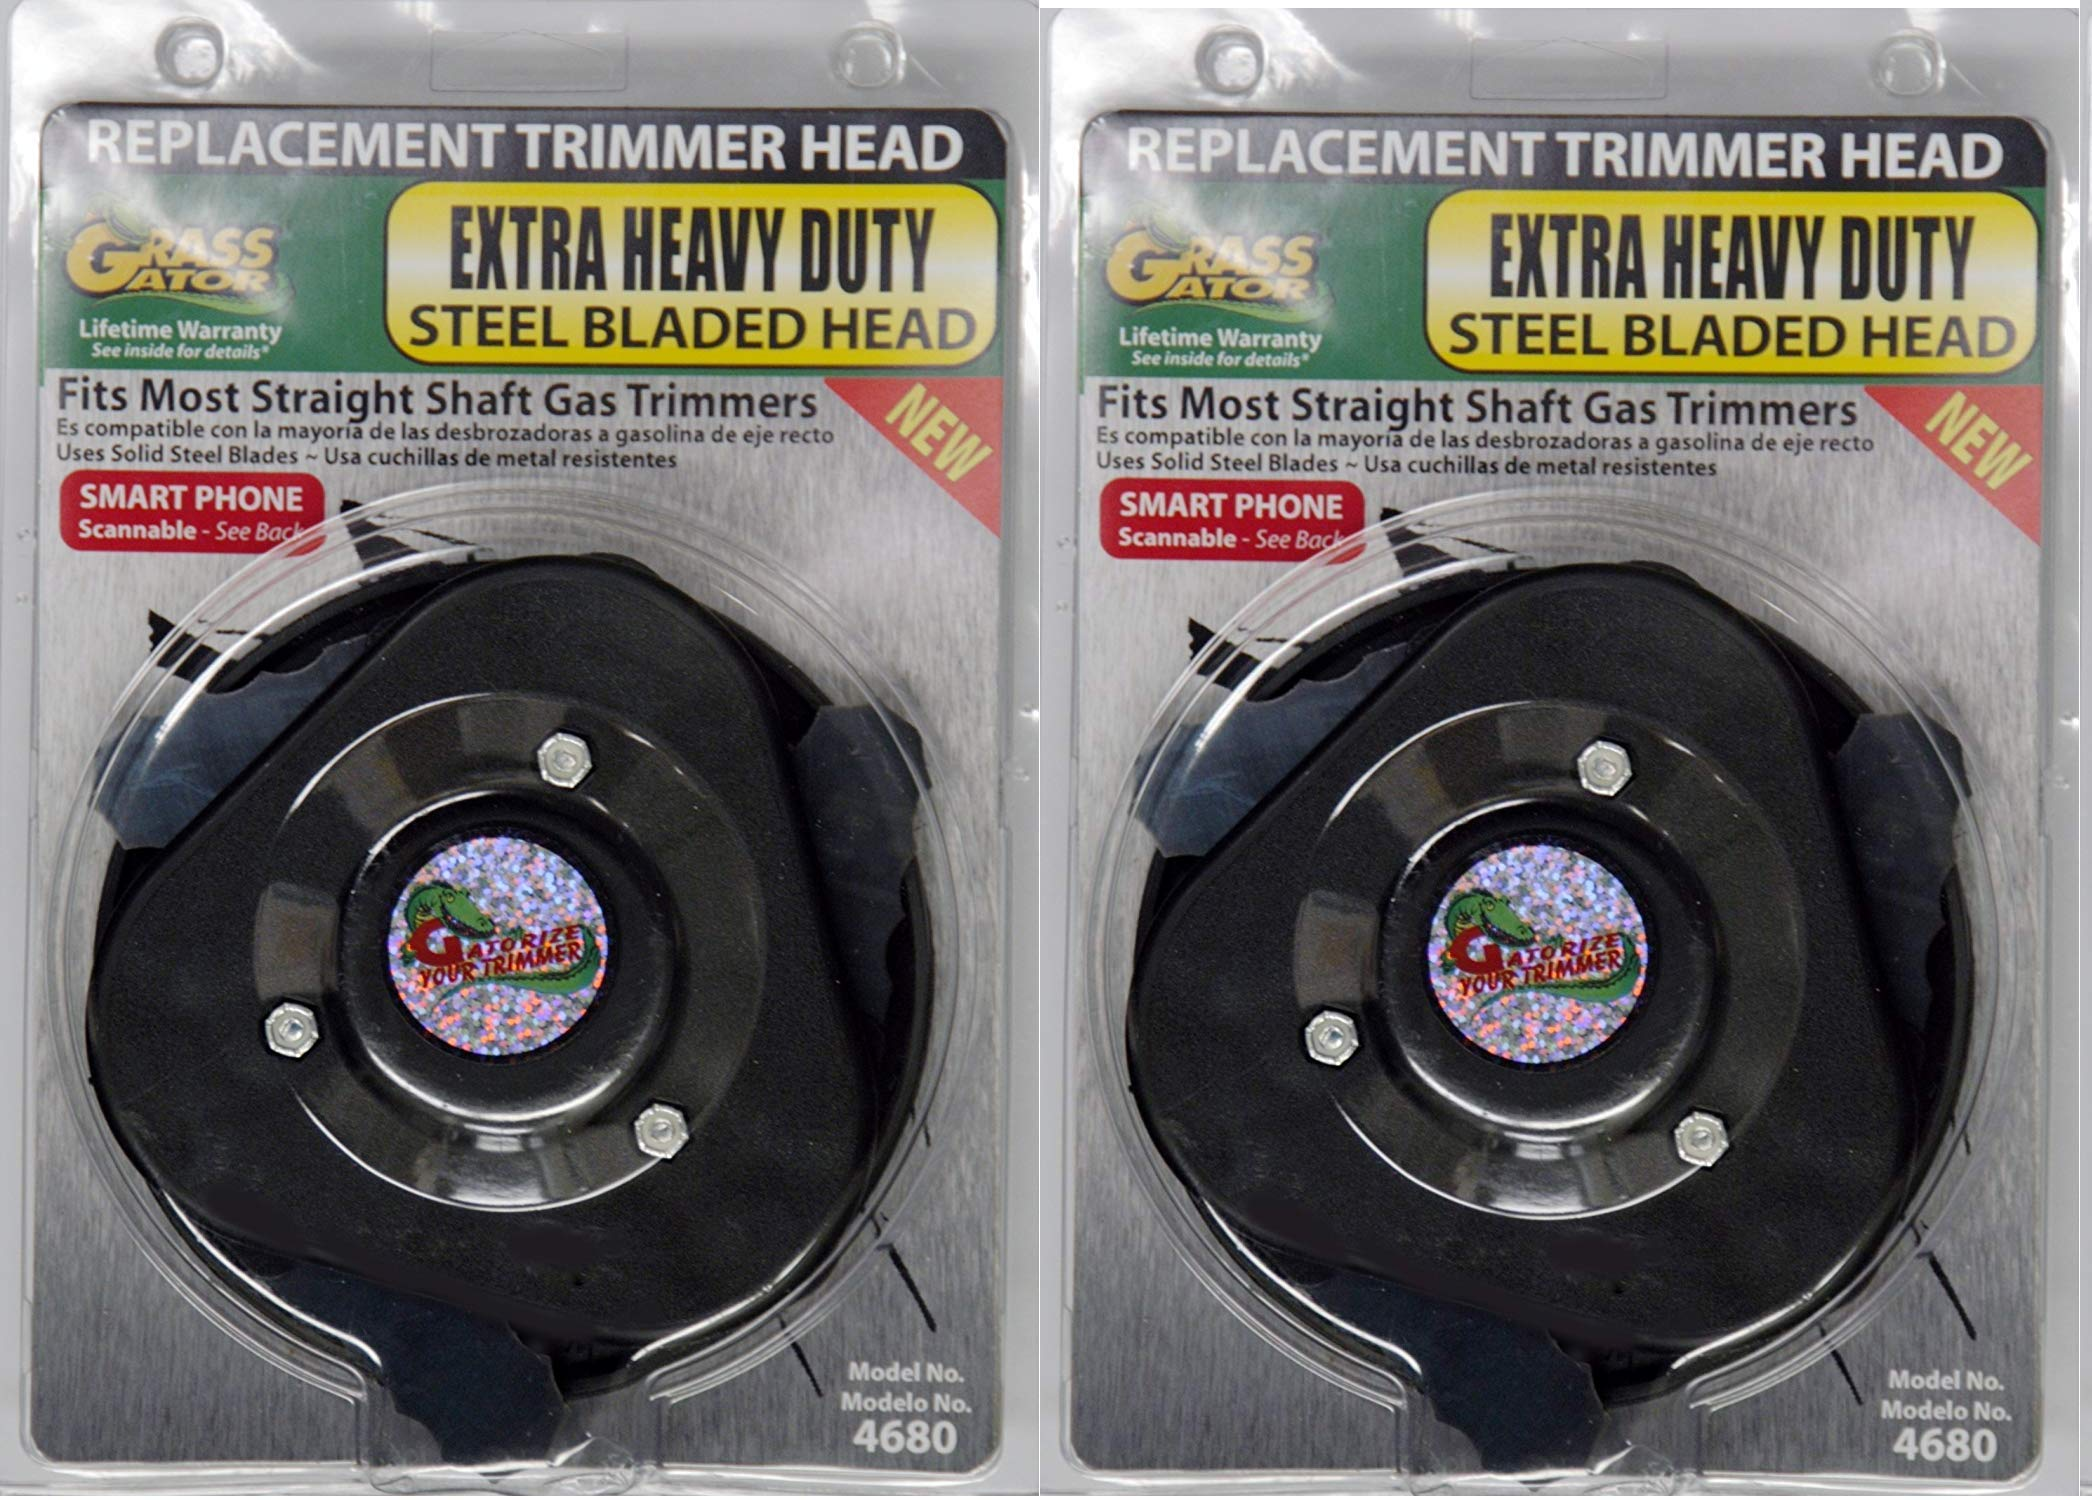 Grass Gator 4680 Brush Cutter Extra Heavy Duty Replacement Trimmer Head (2-Pack)